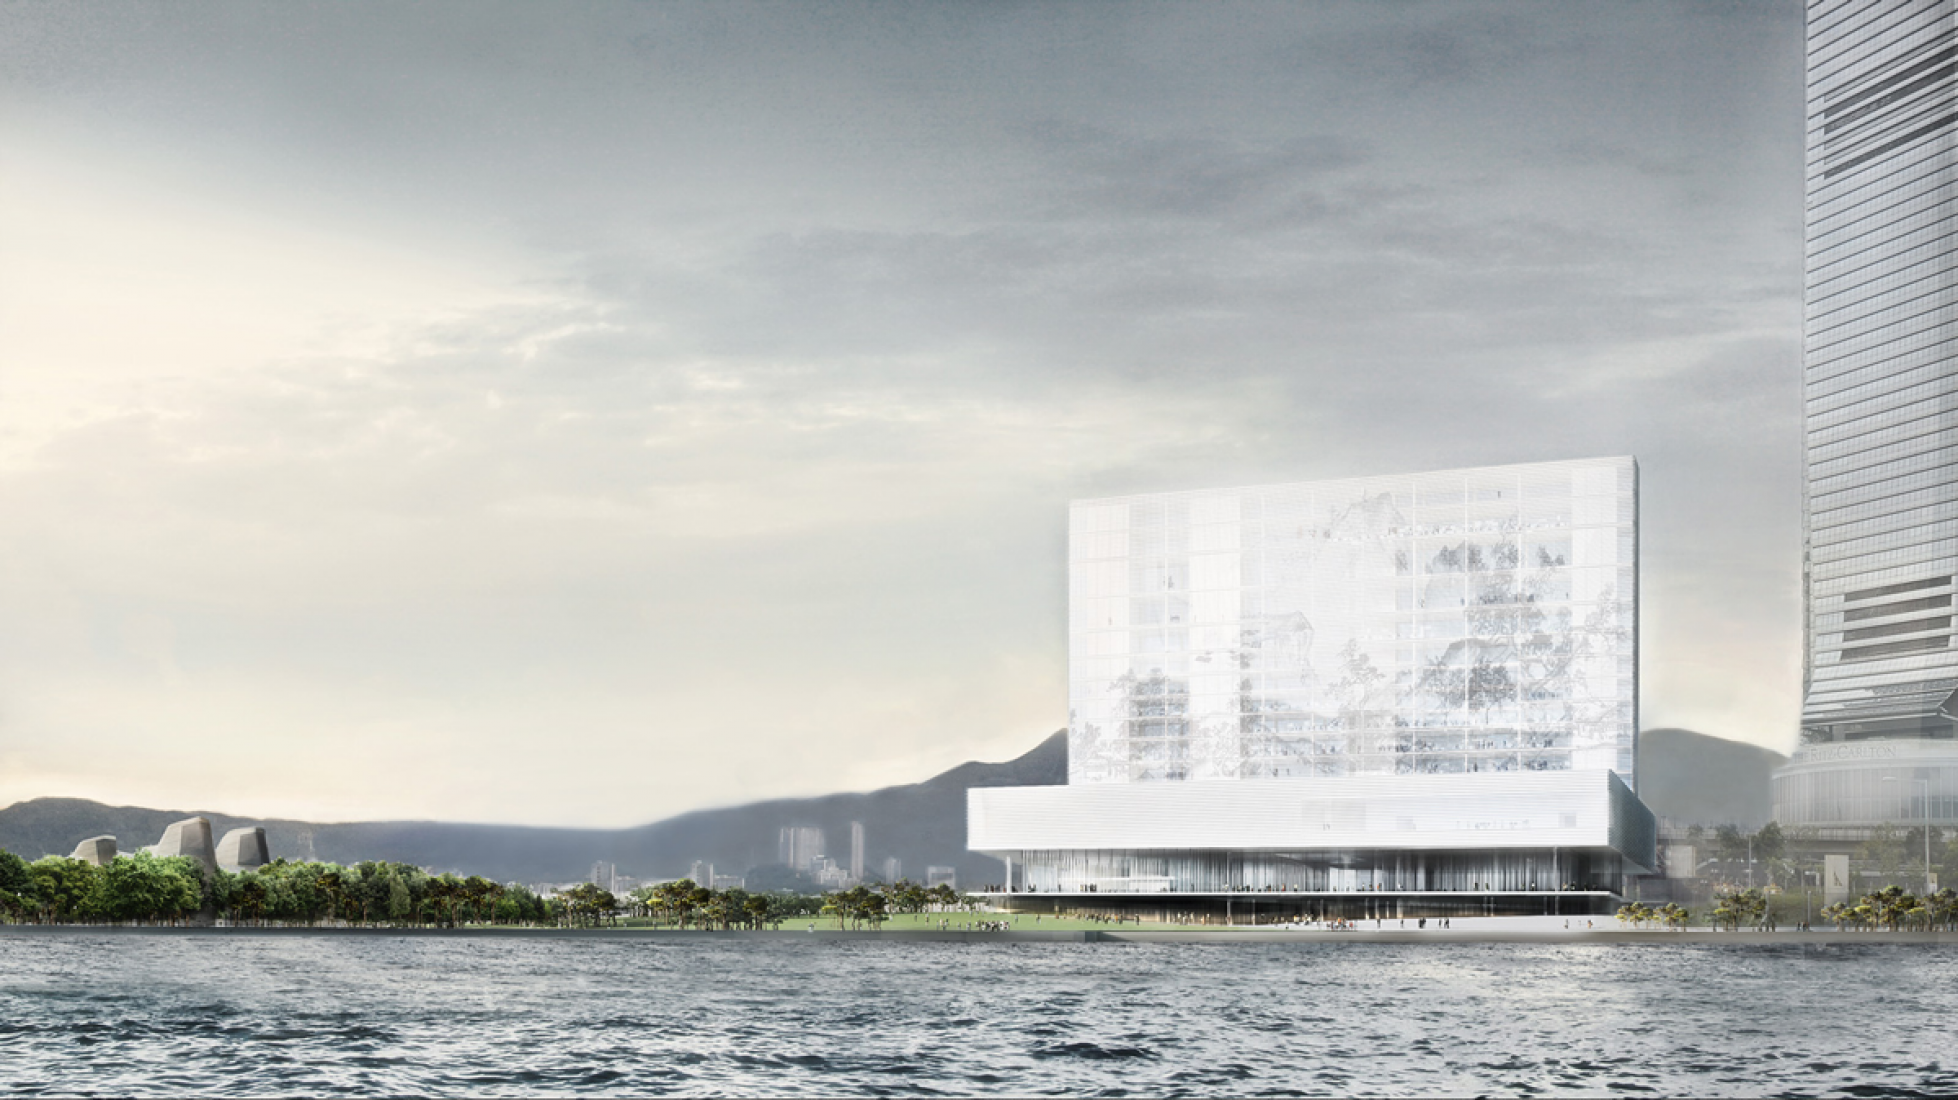 M+ museum in Hong Kong, by Herzog & de Meuron. Courtesy of West Kowloon Cultural District Authority